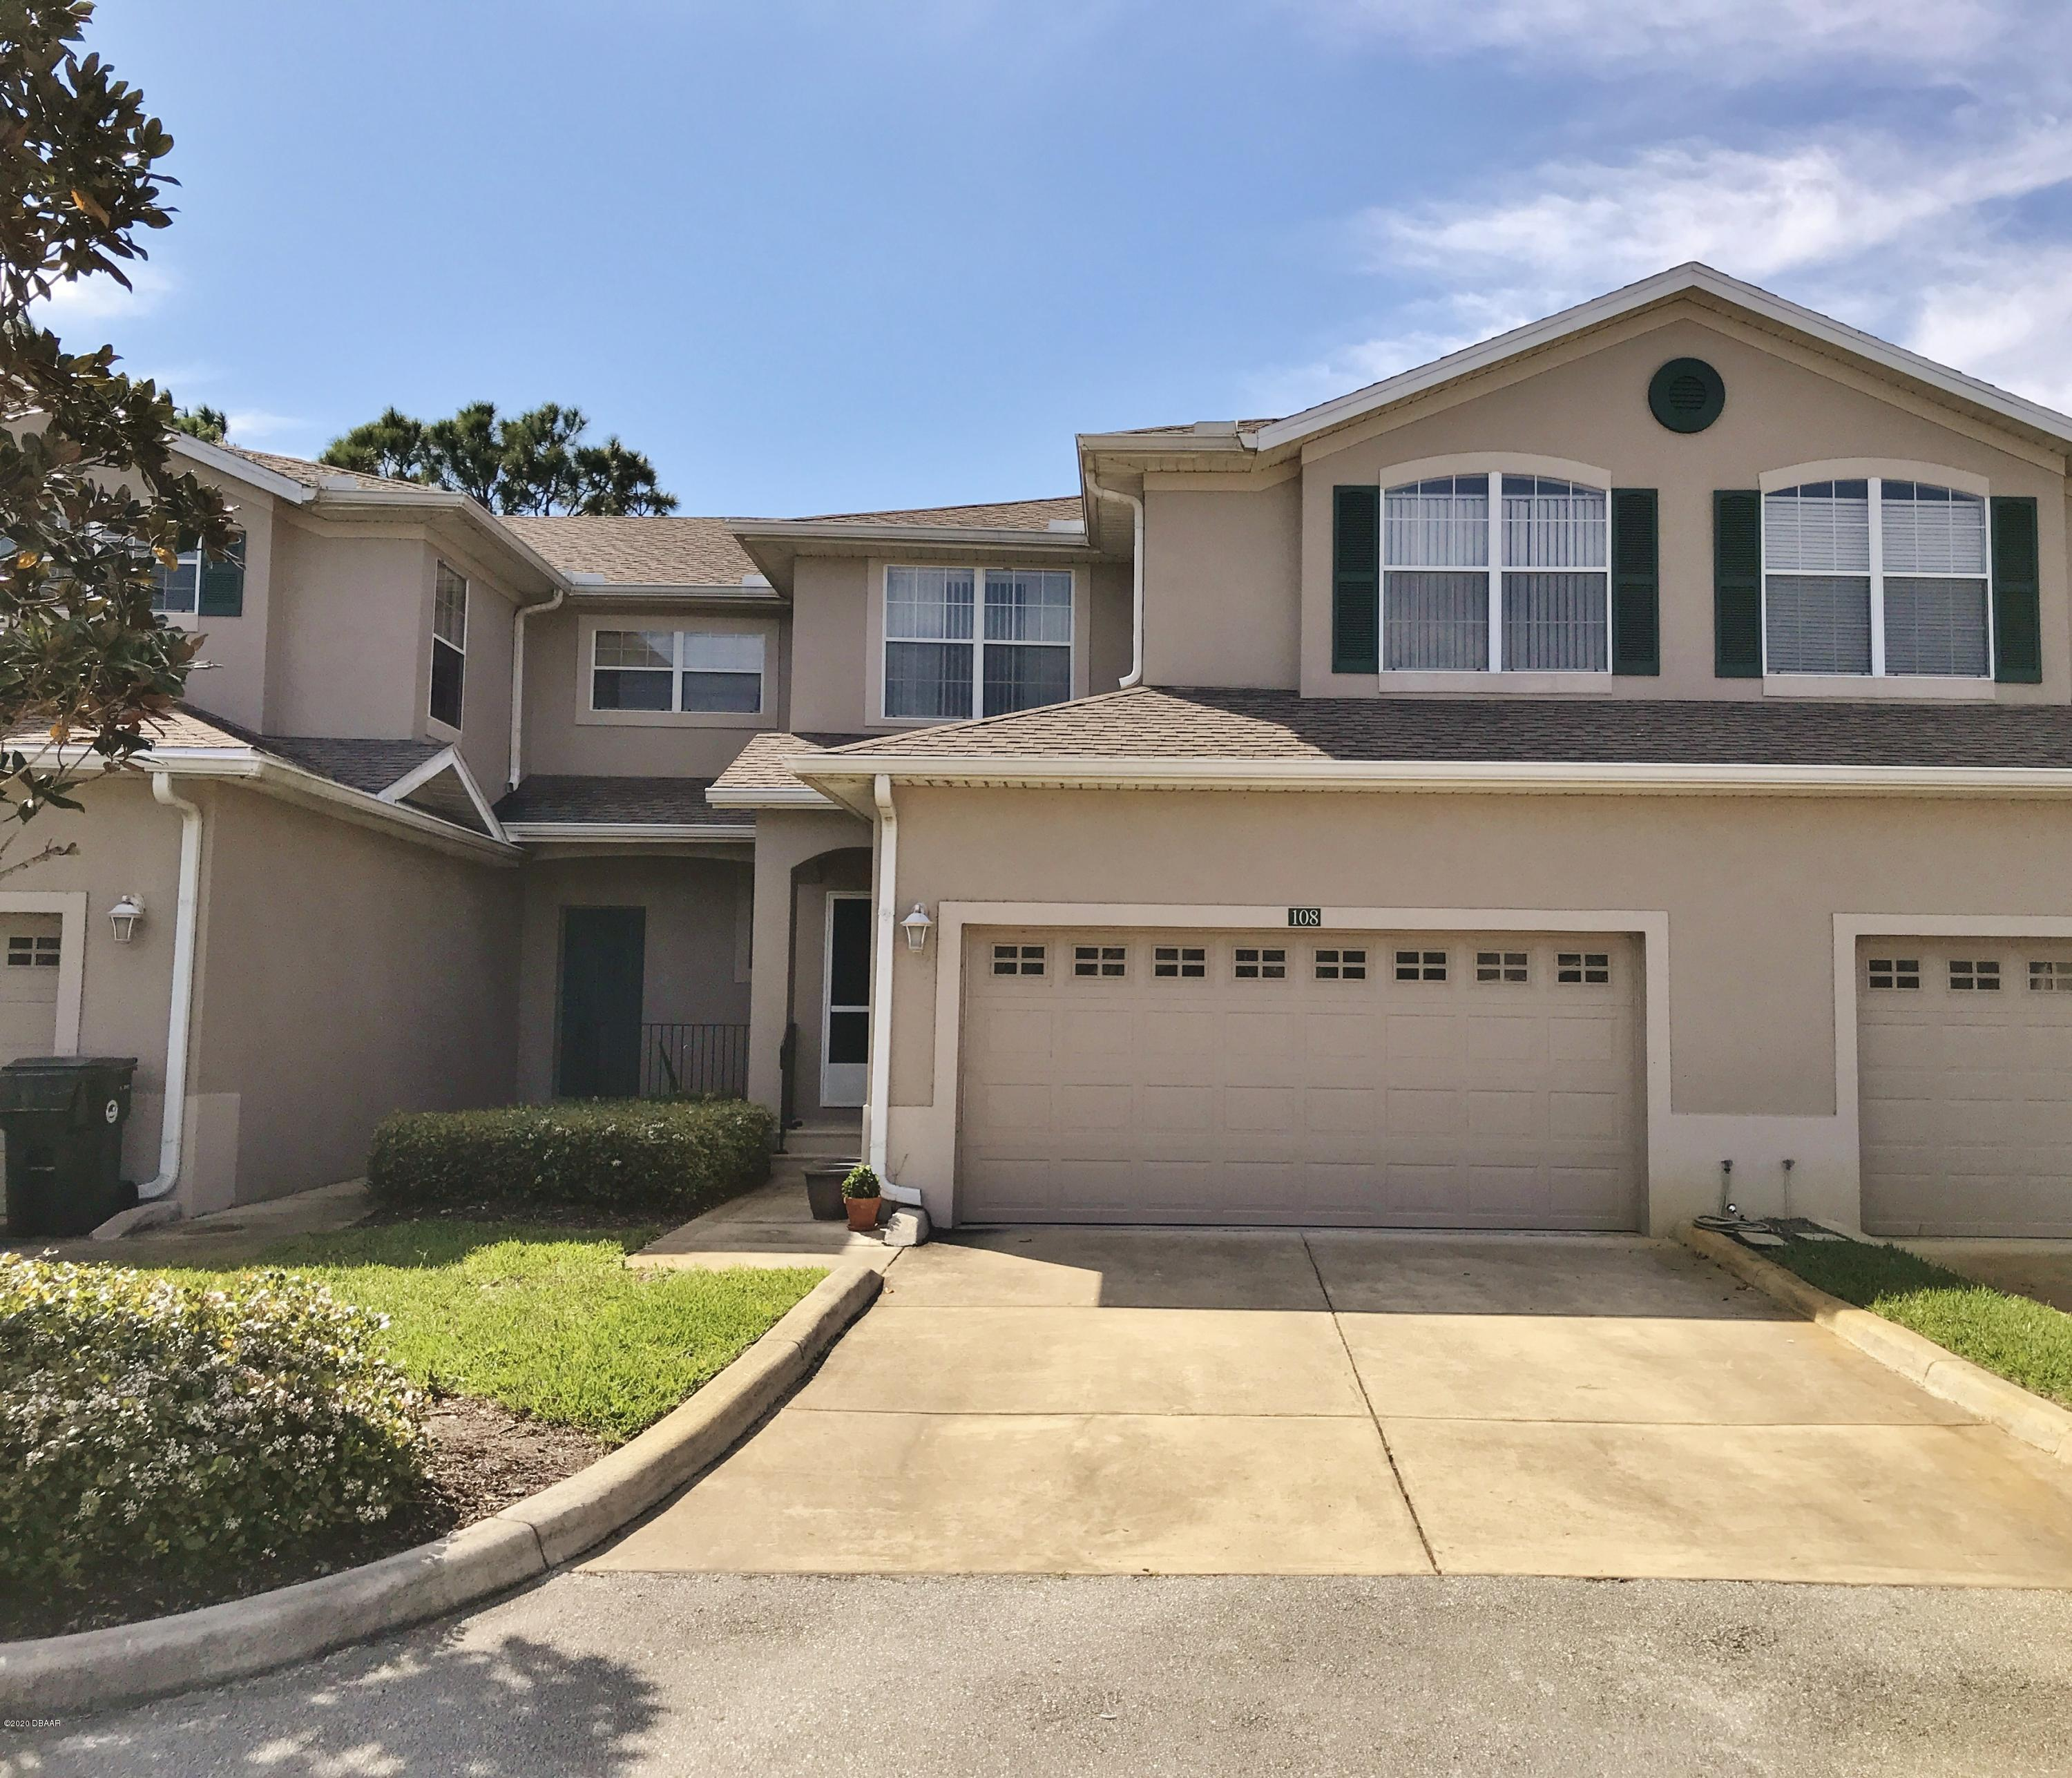 108 Grey Widgeon Daytona Beach - 2